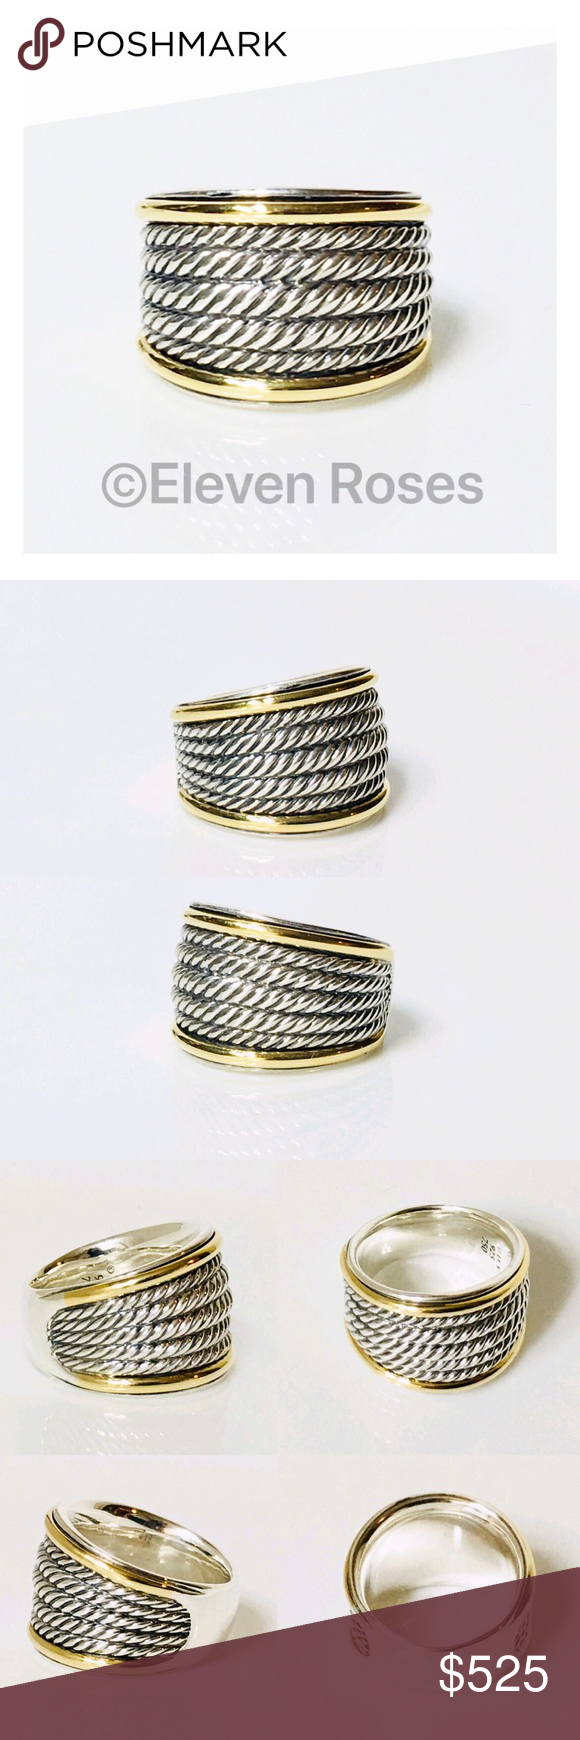 David Yurman Sterling & 18k Wide Cable Band Ring in 2020 ...